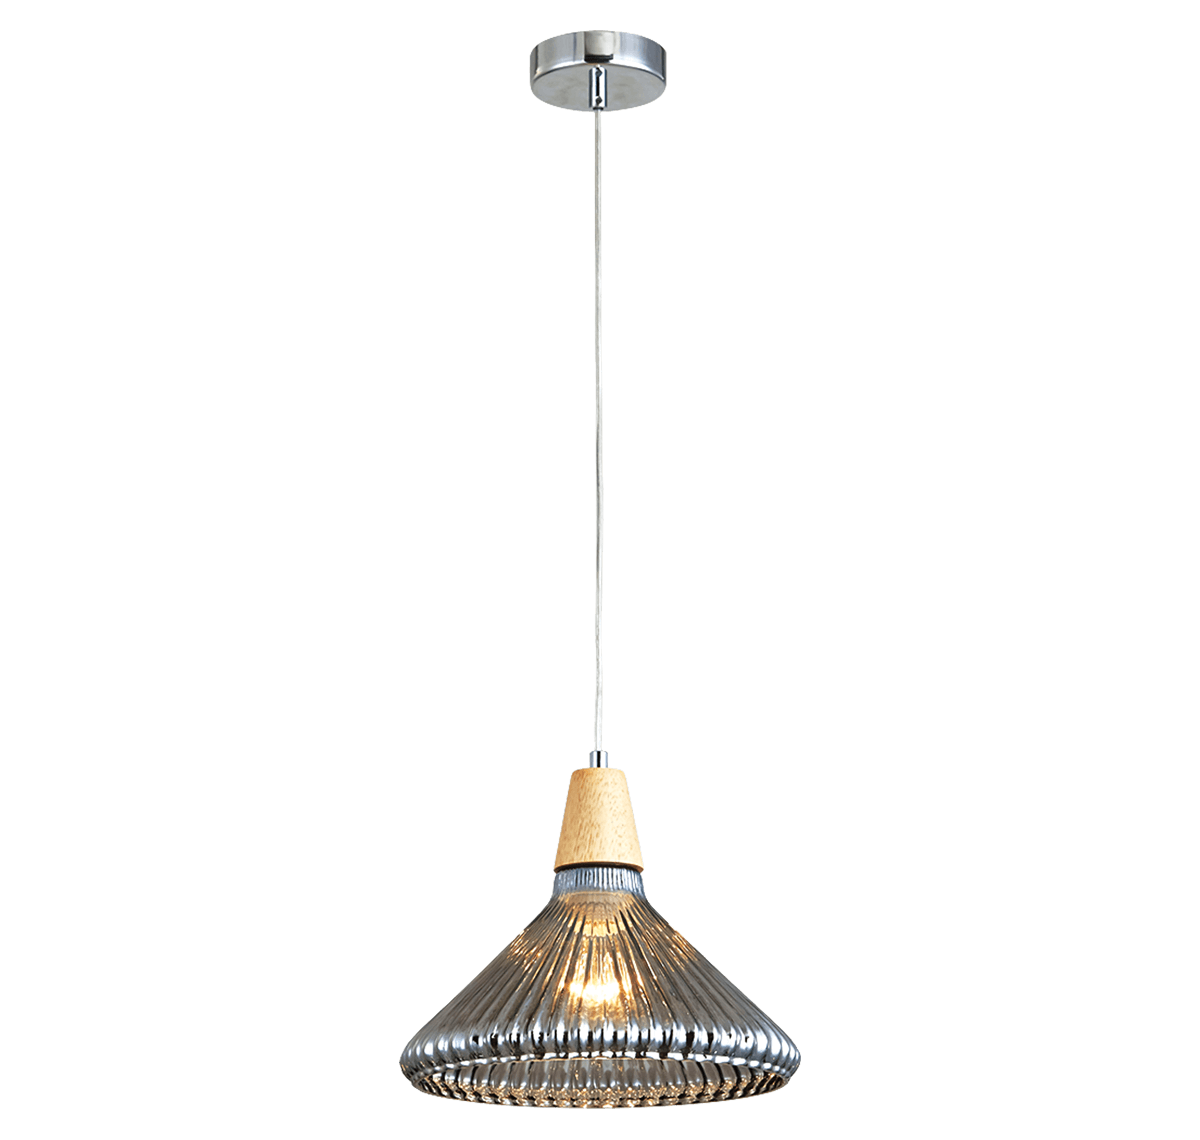 Crystine Pendant 1LS E27 D280 CGN+WD